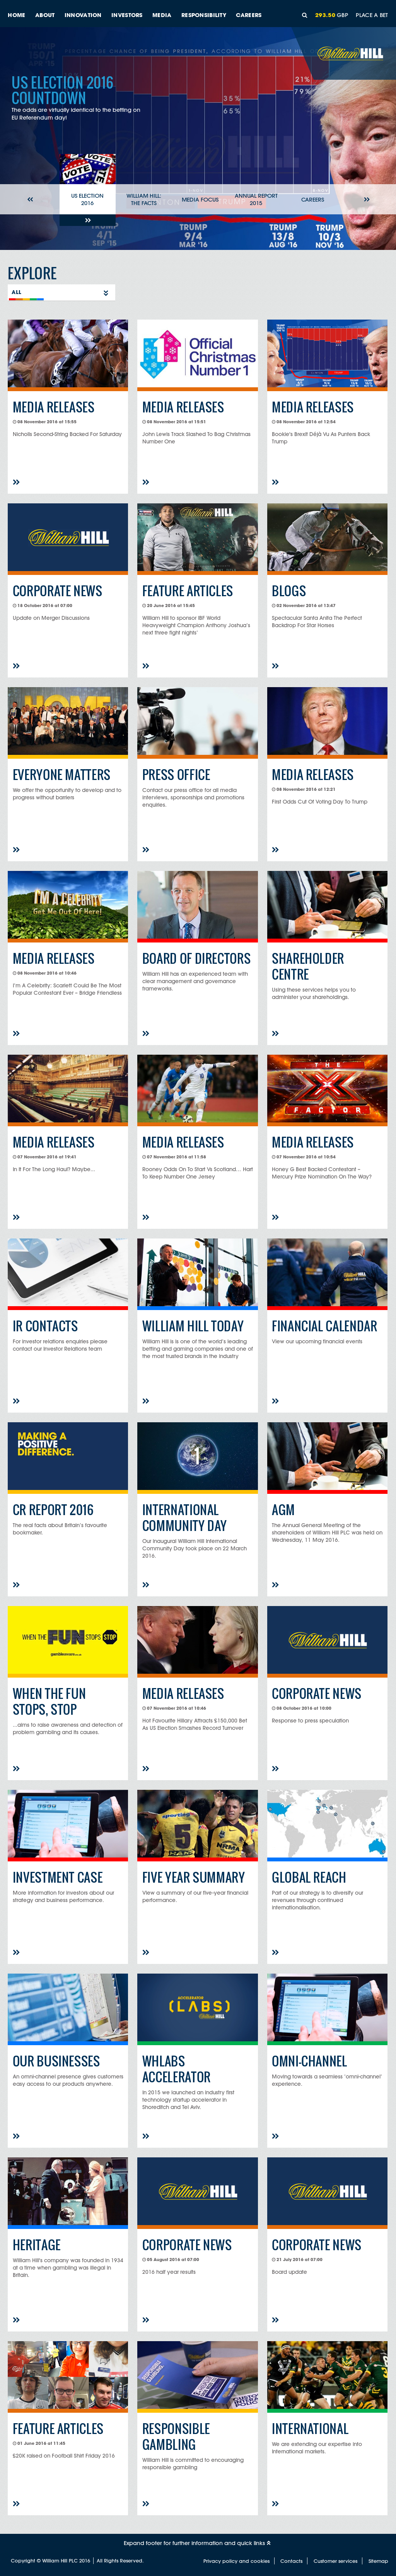 William Hill Competitors, Revenue and Employees - Owler